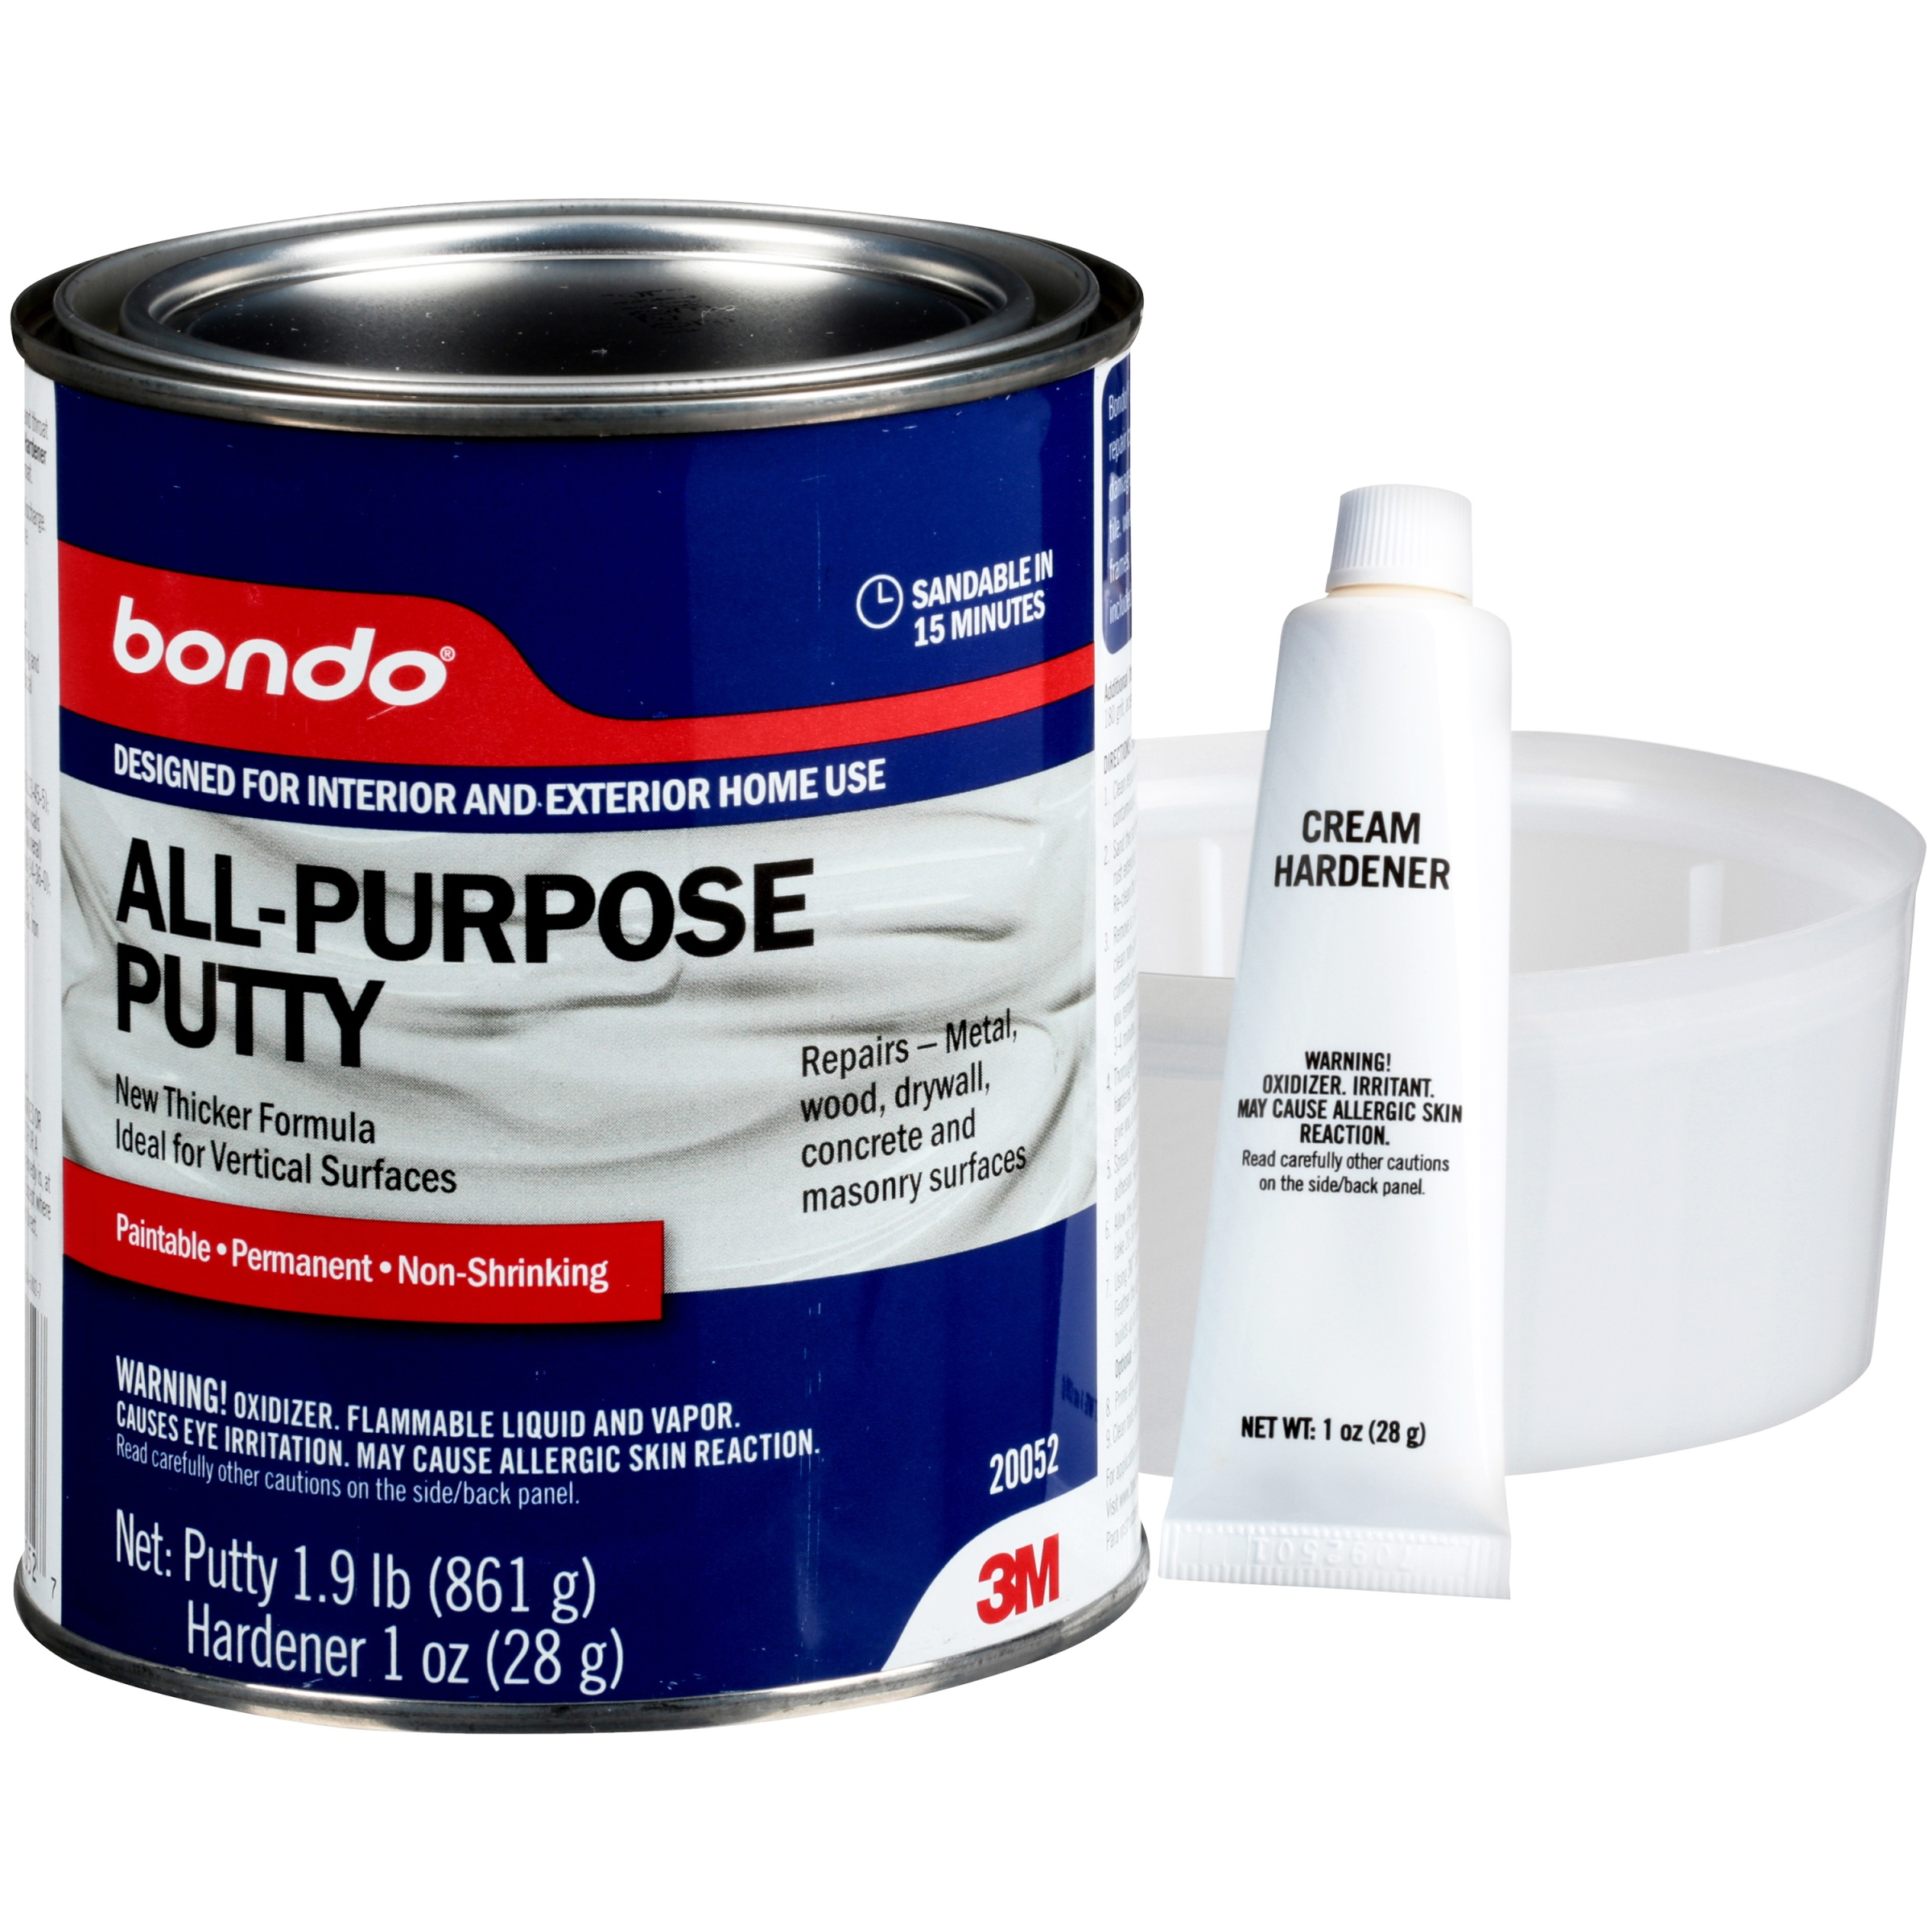 Bondo® All-Purpose Putty & Cream Hardener Variety Pack 2 pc Pack